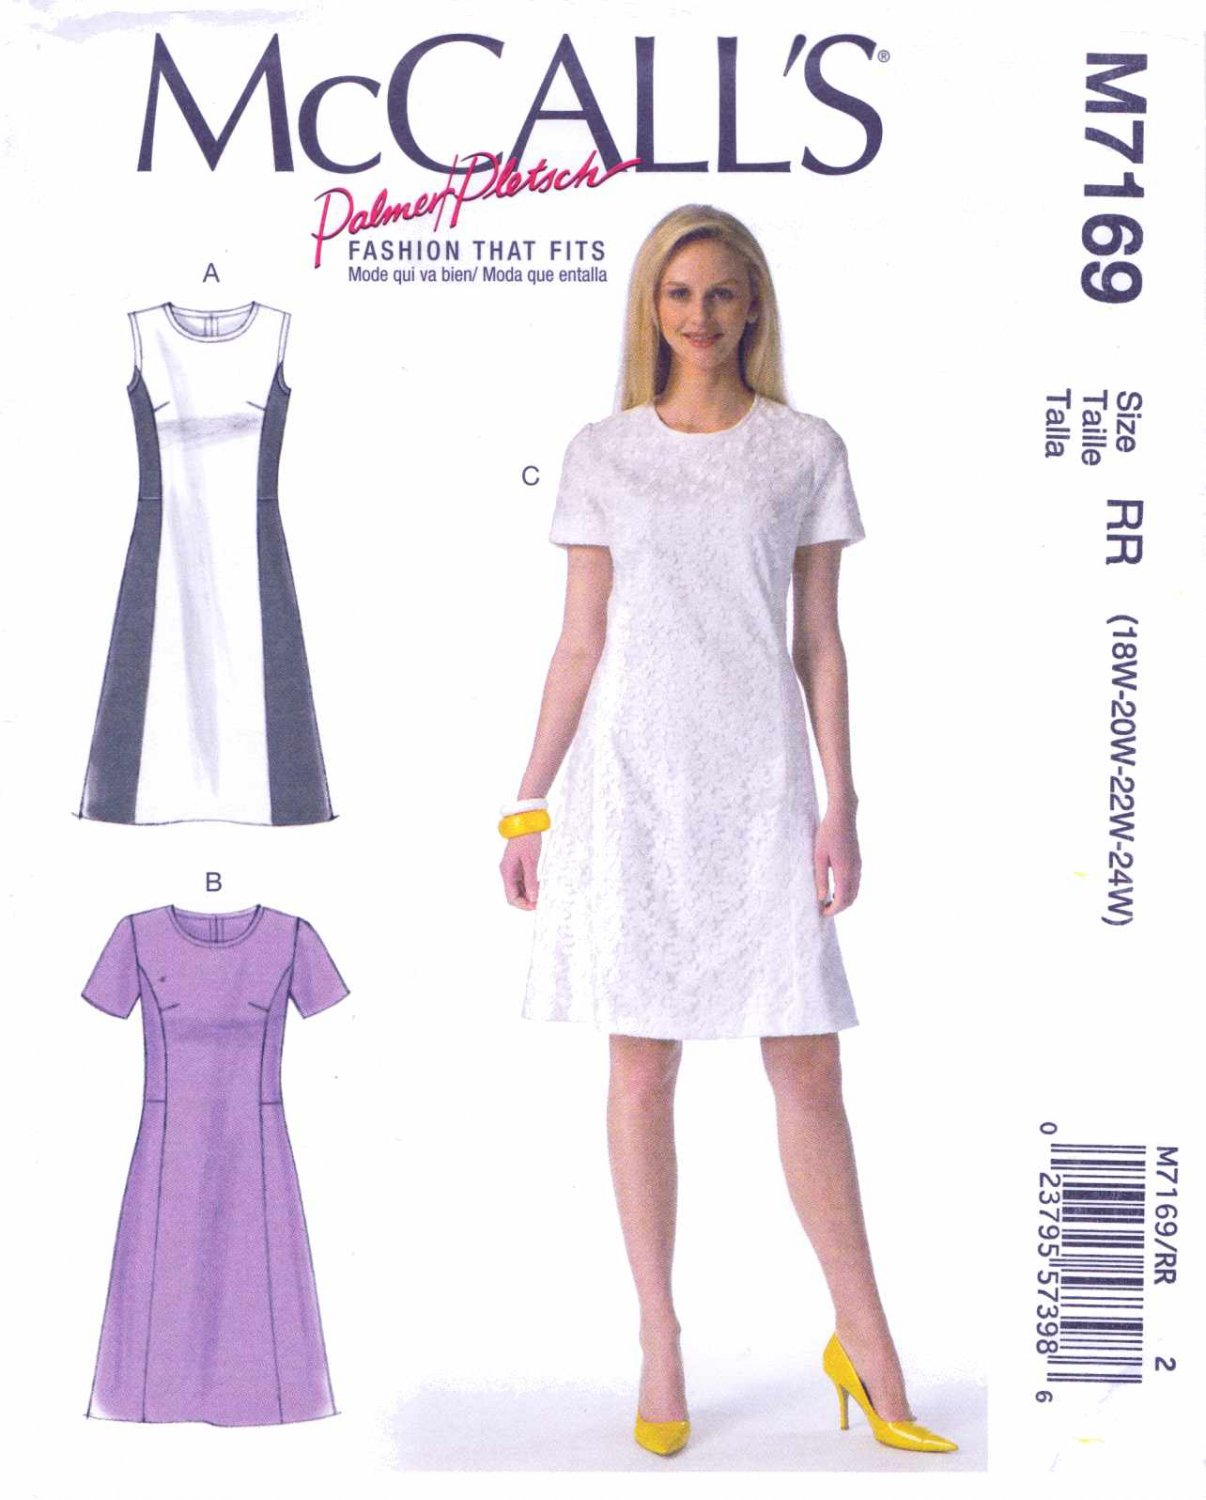 McCall's Sewing Pattern 7169 Misses Size 8-16 Palmer/Pletsch Classic A-Line Dress Sleeve Options